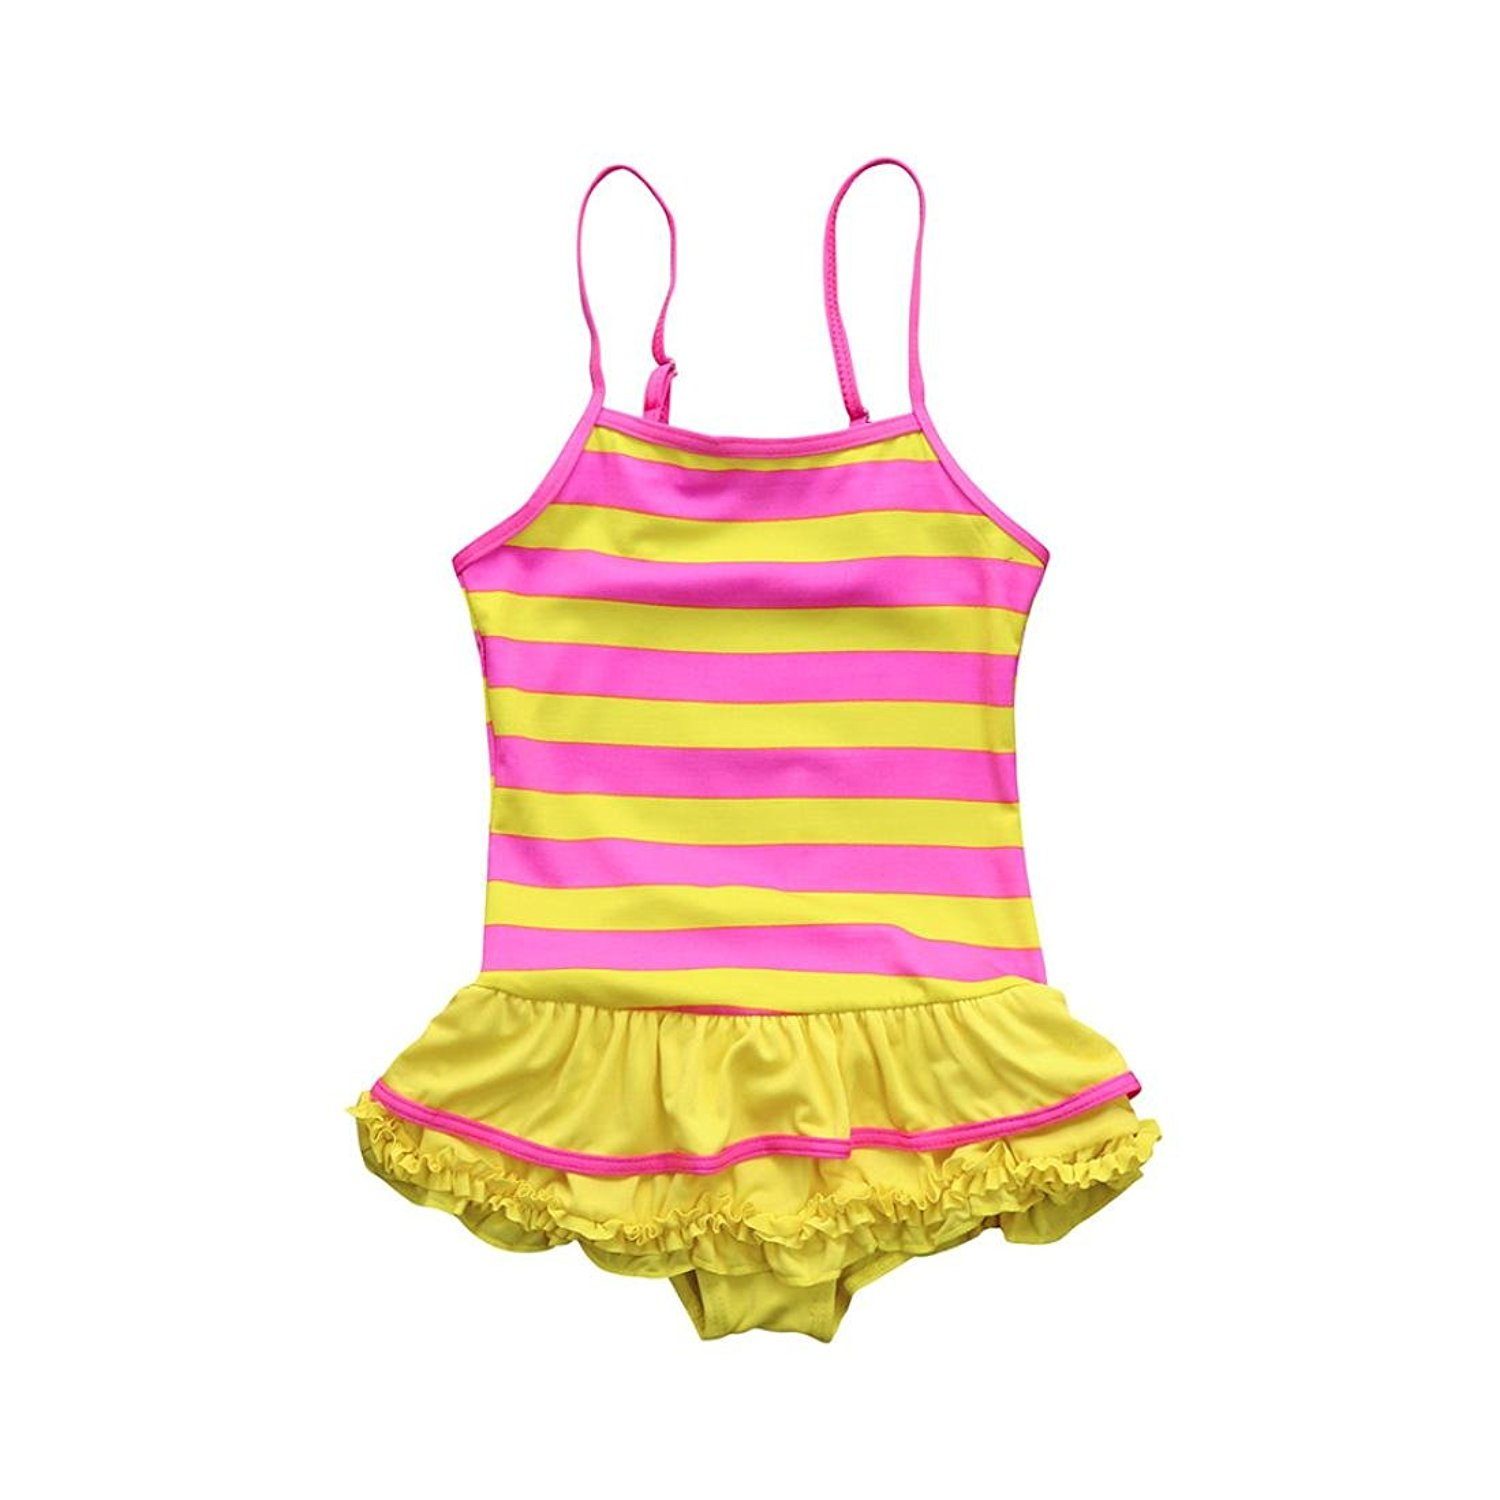 ab548de62a Get Quotations · Bikini For Little Girls, Baby Girl Striped Romper Ruffles  Swimsuits Straps